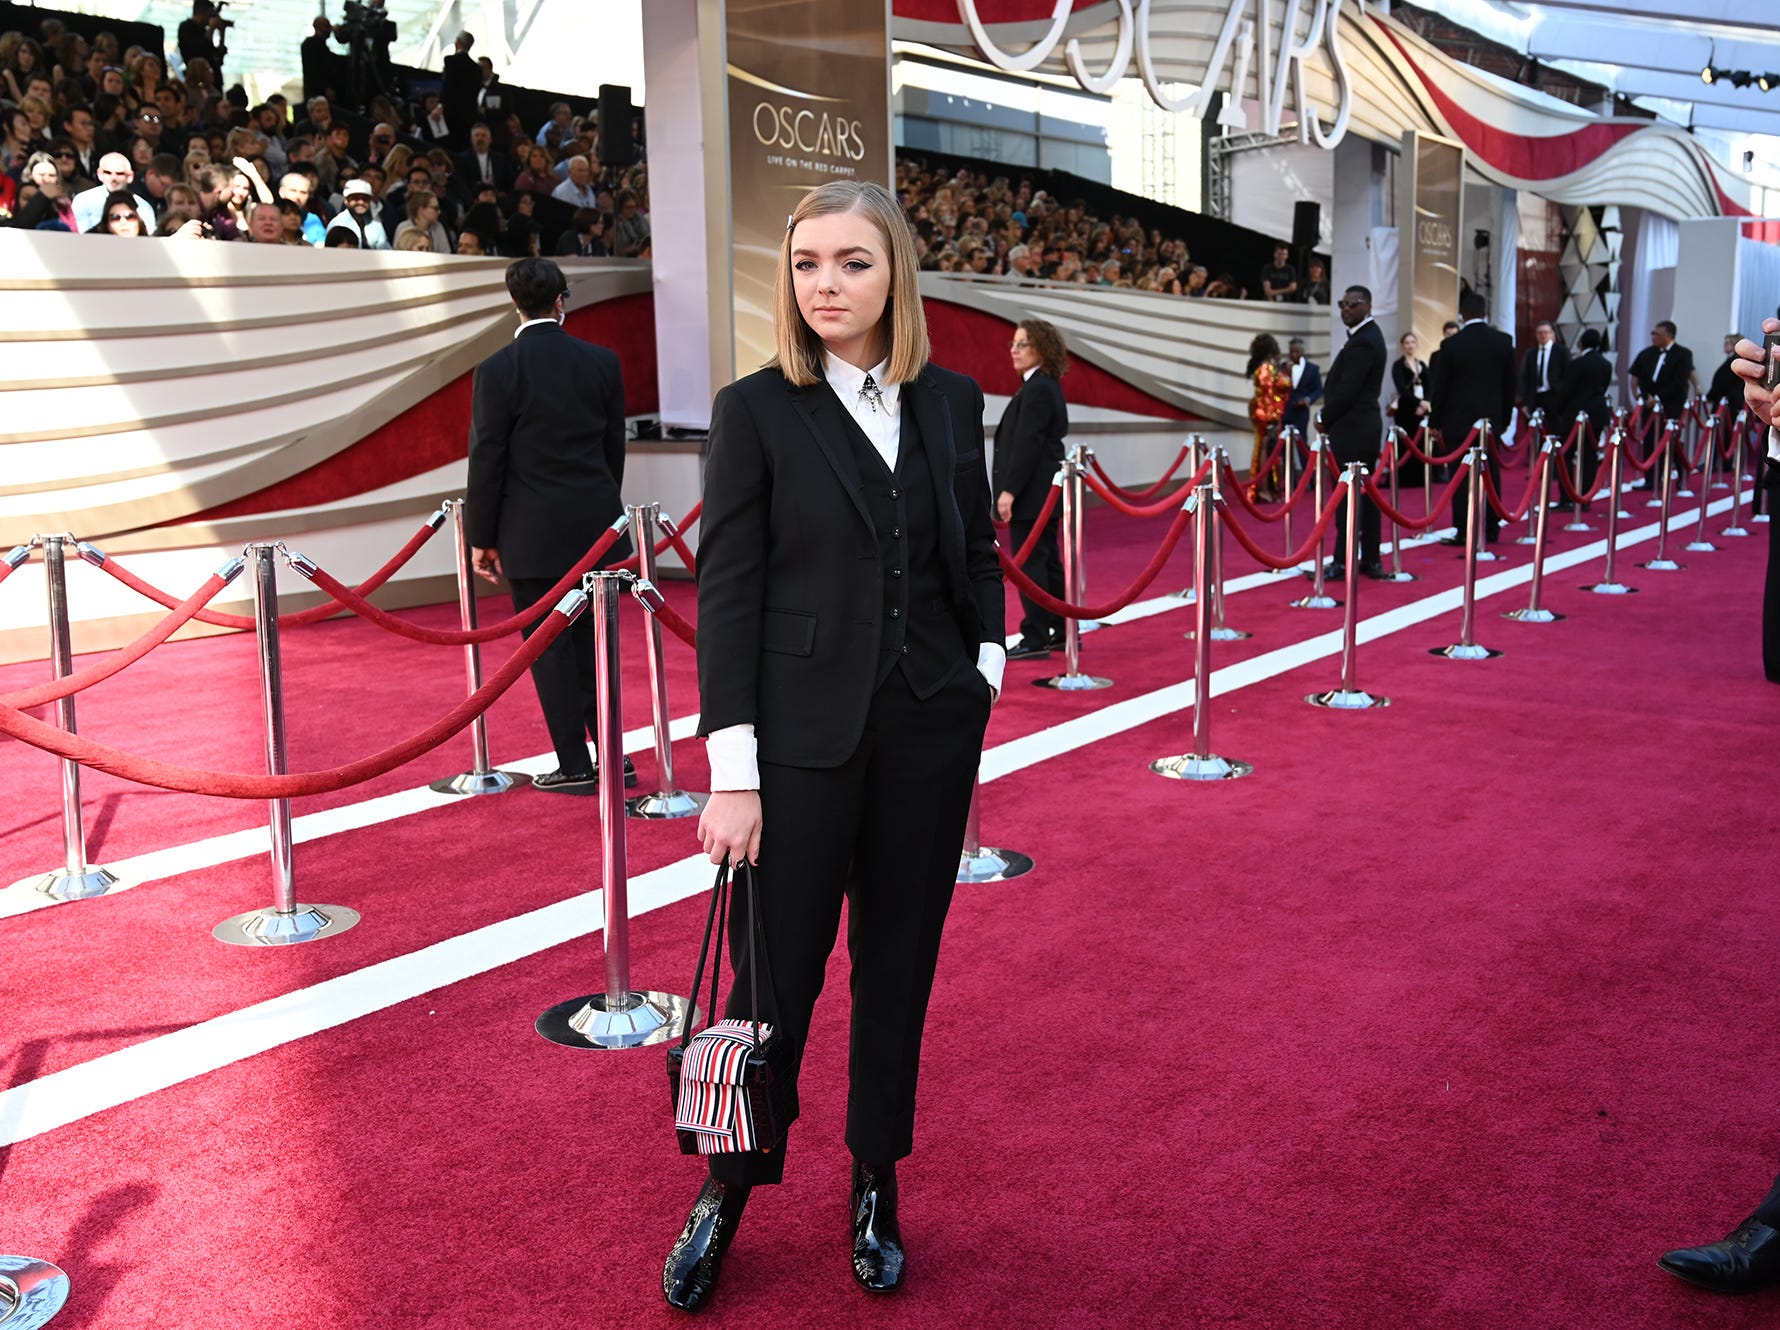 February 24, 2019; Los Angeles, CA, USA; Elsie Fisher arrives at the 91st Academy Awards at the Dolby Theatre. Mandatory Credit: Robert Hanashiro-USA TODAY NETWORK (Via OlyDrop)